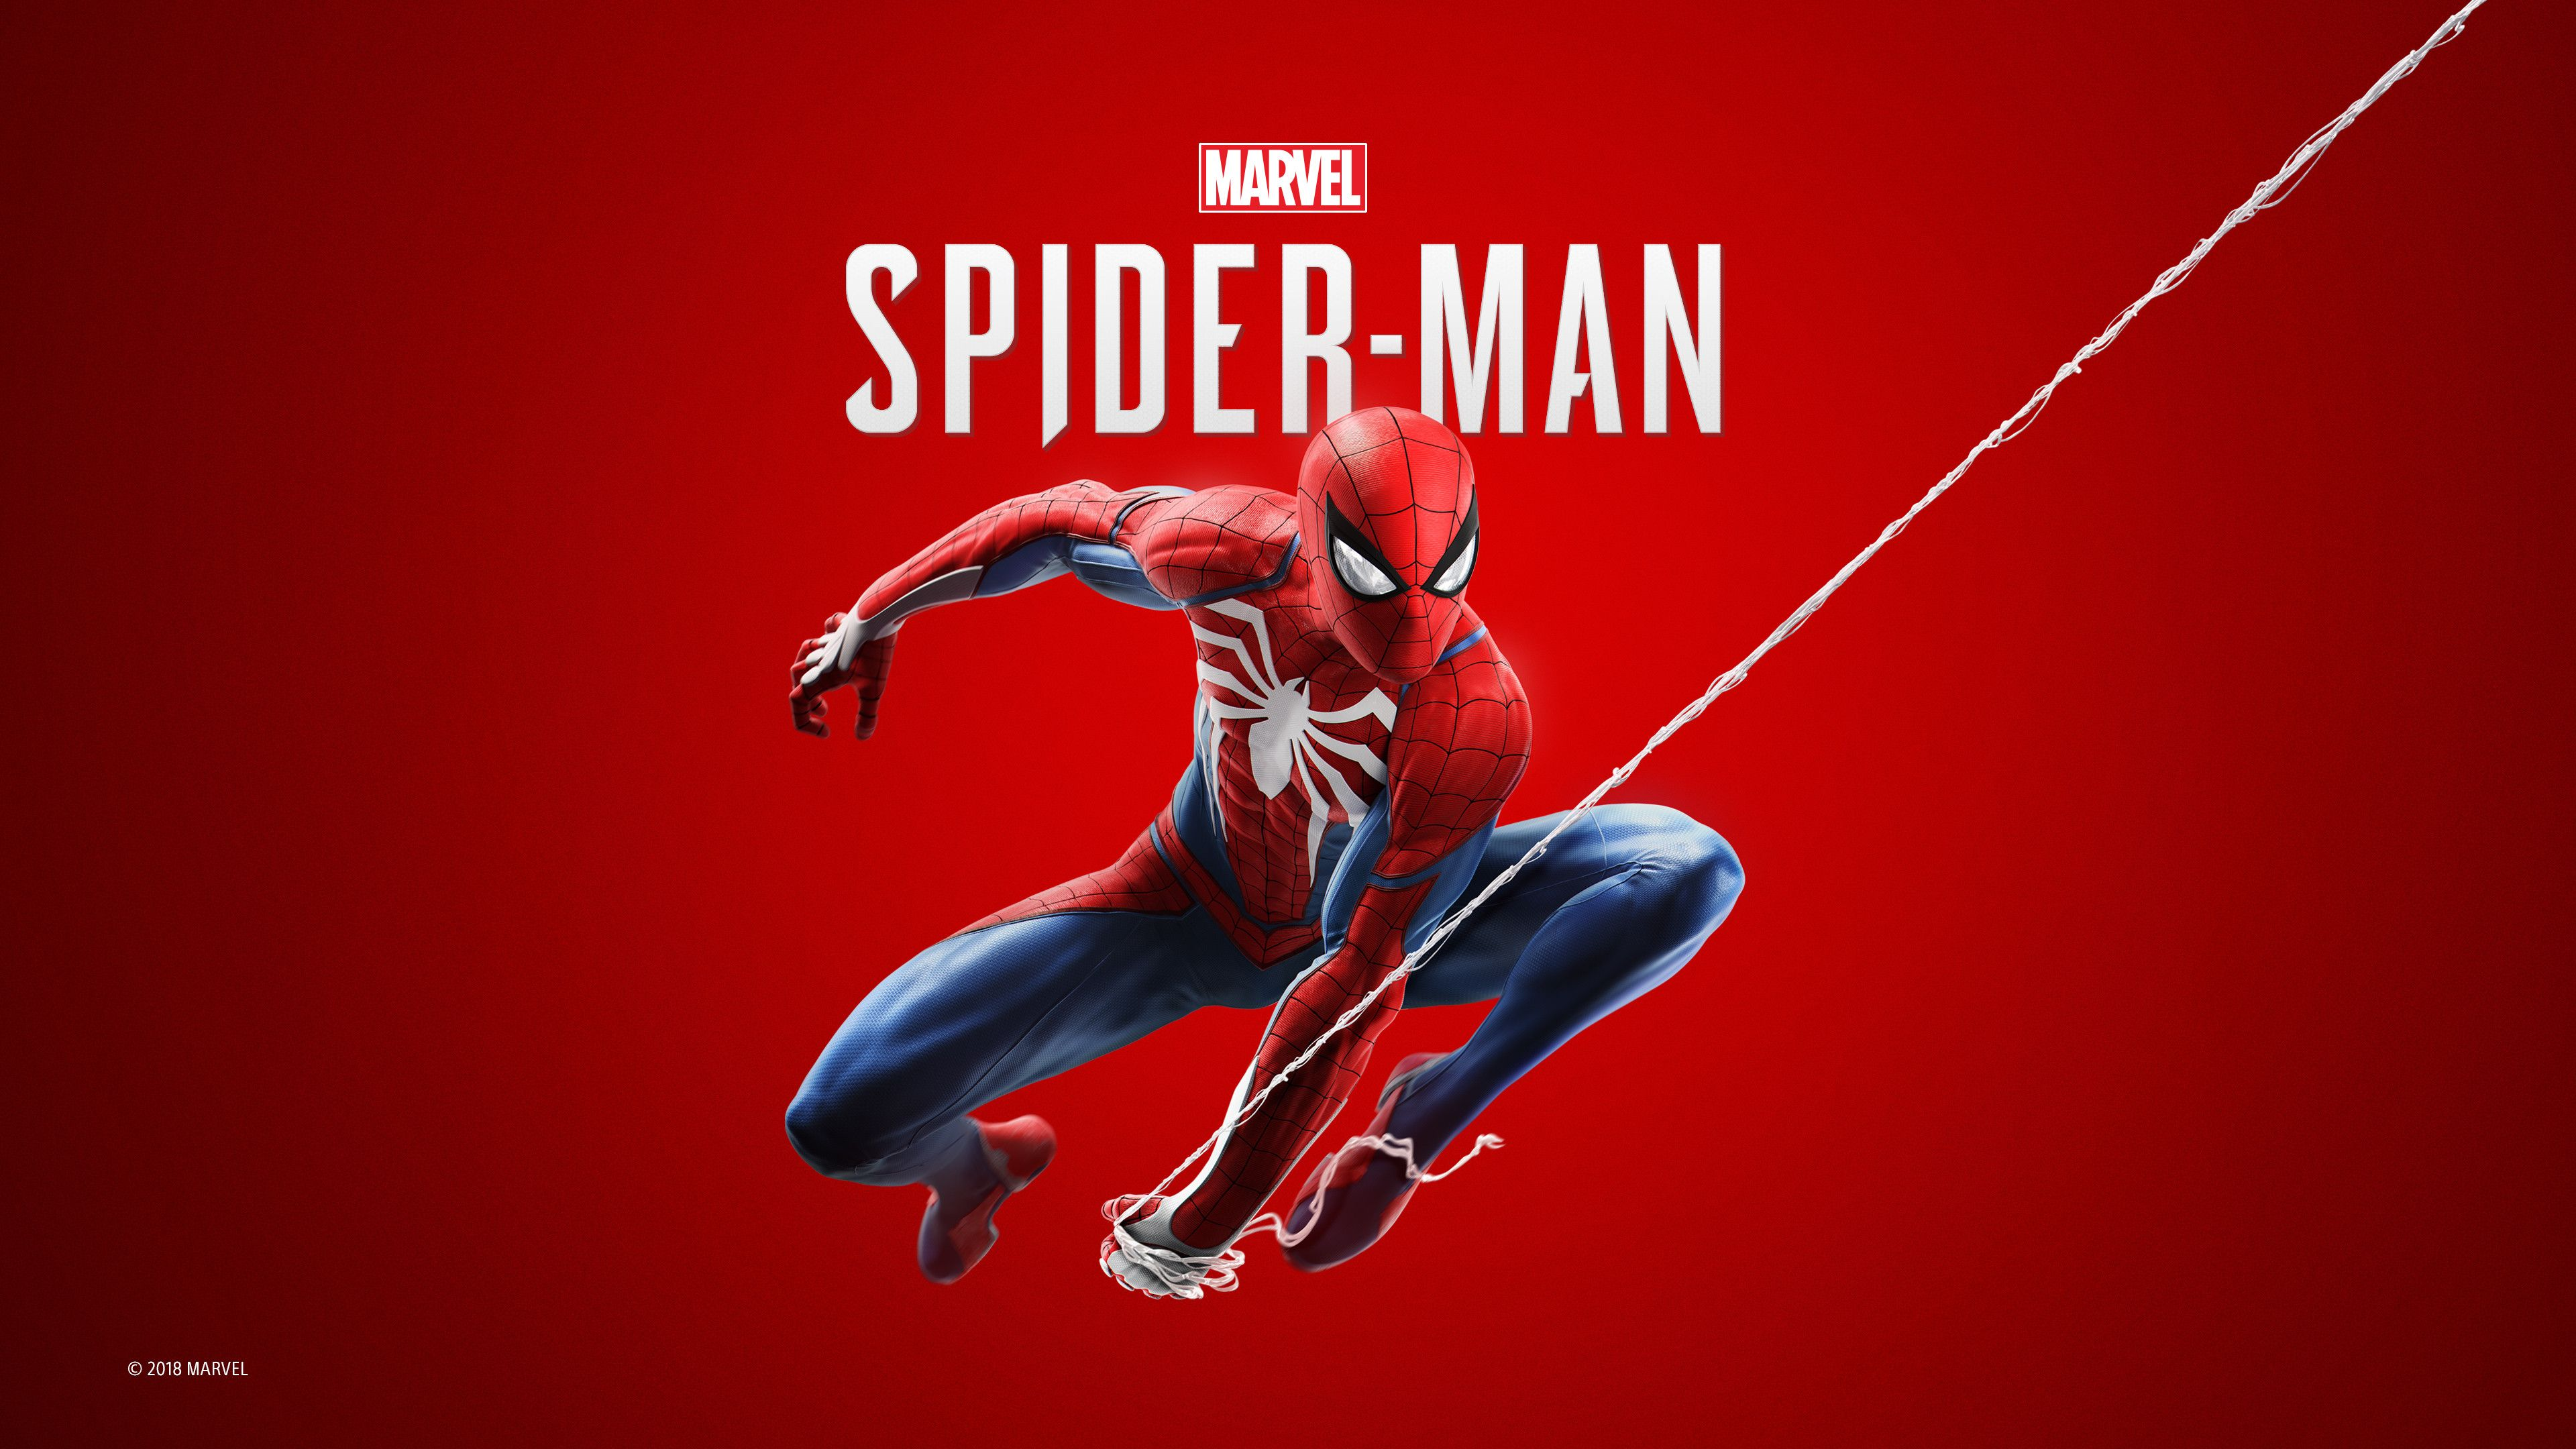 66+ 4K Spiderman Wallpapers